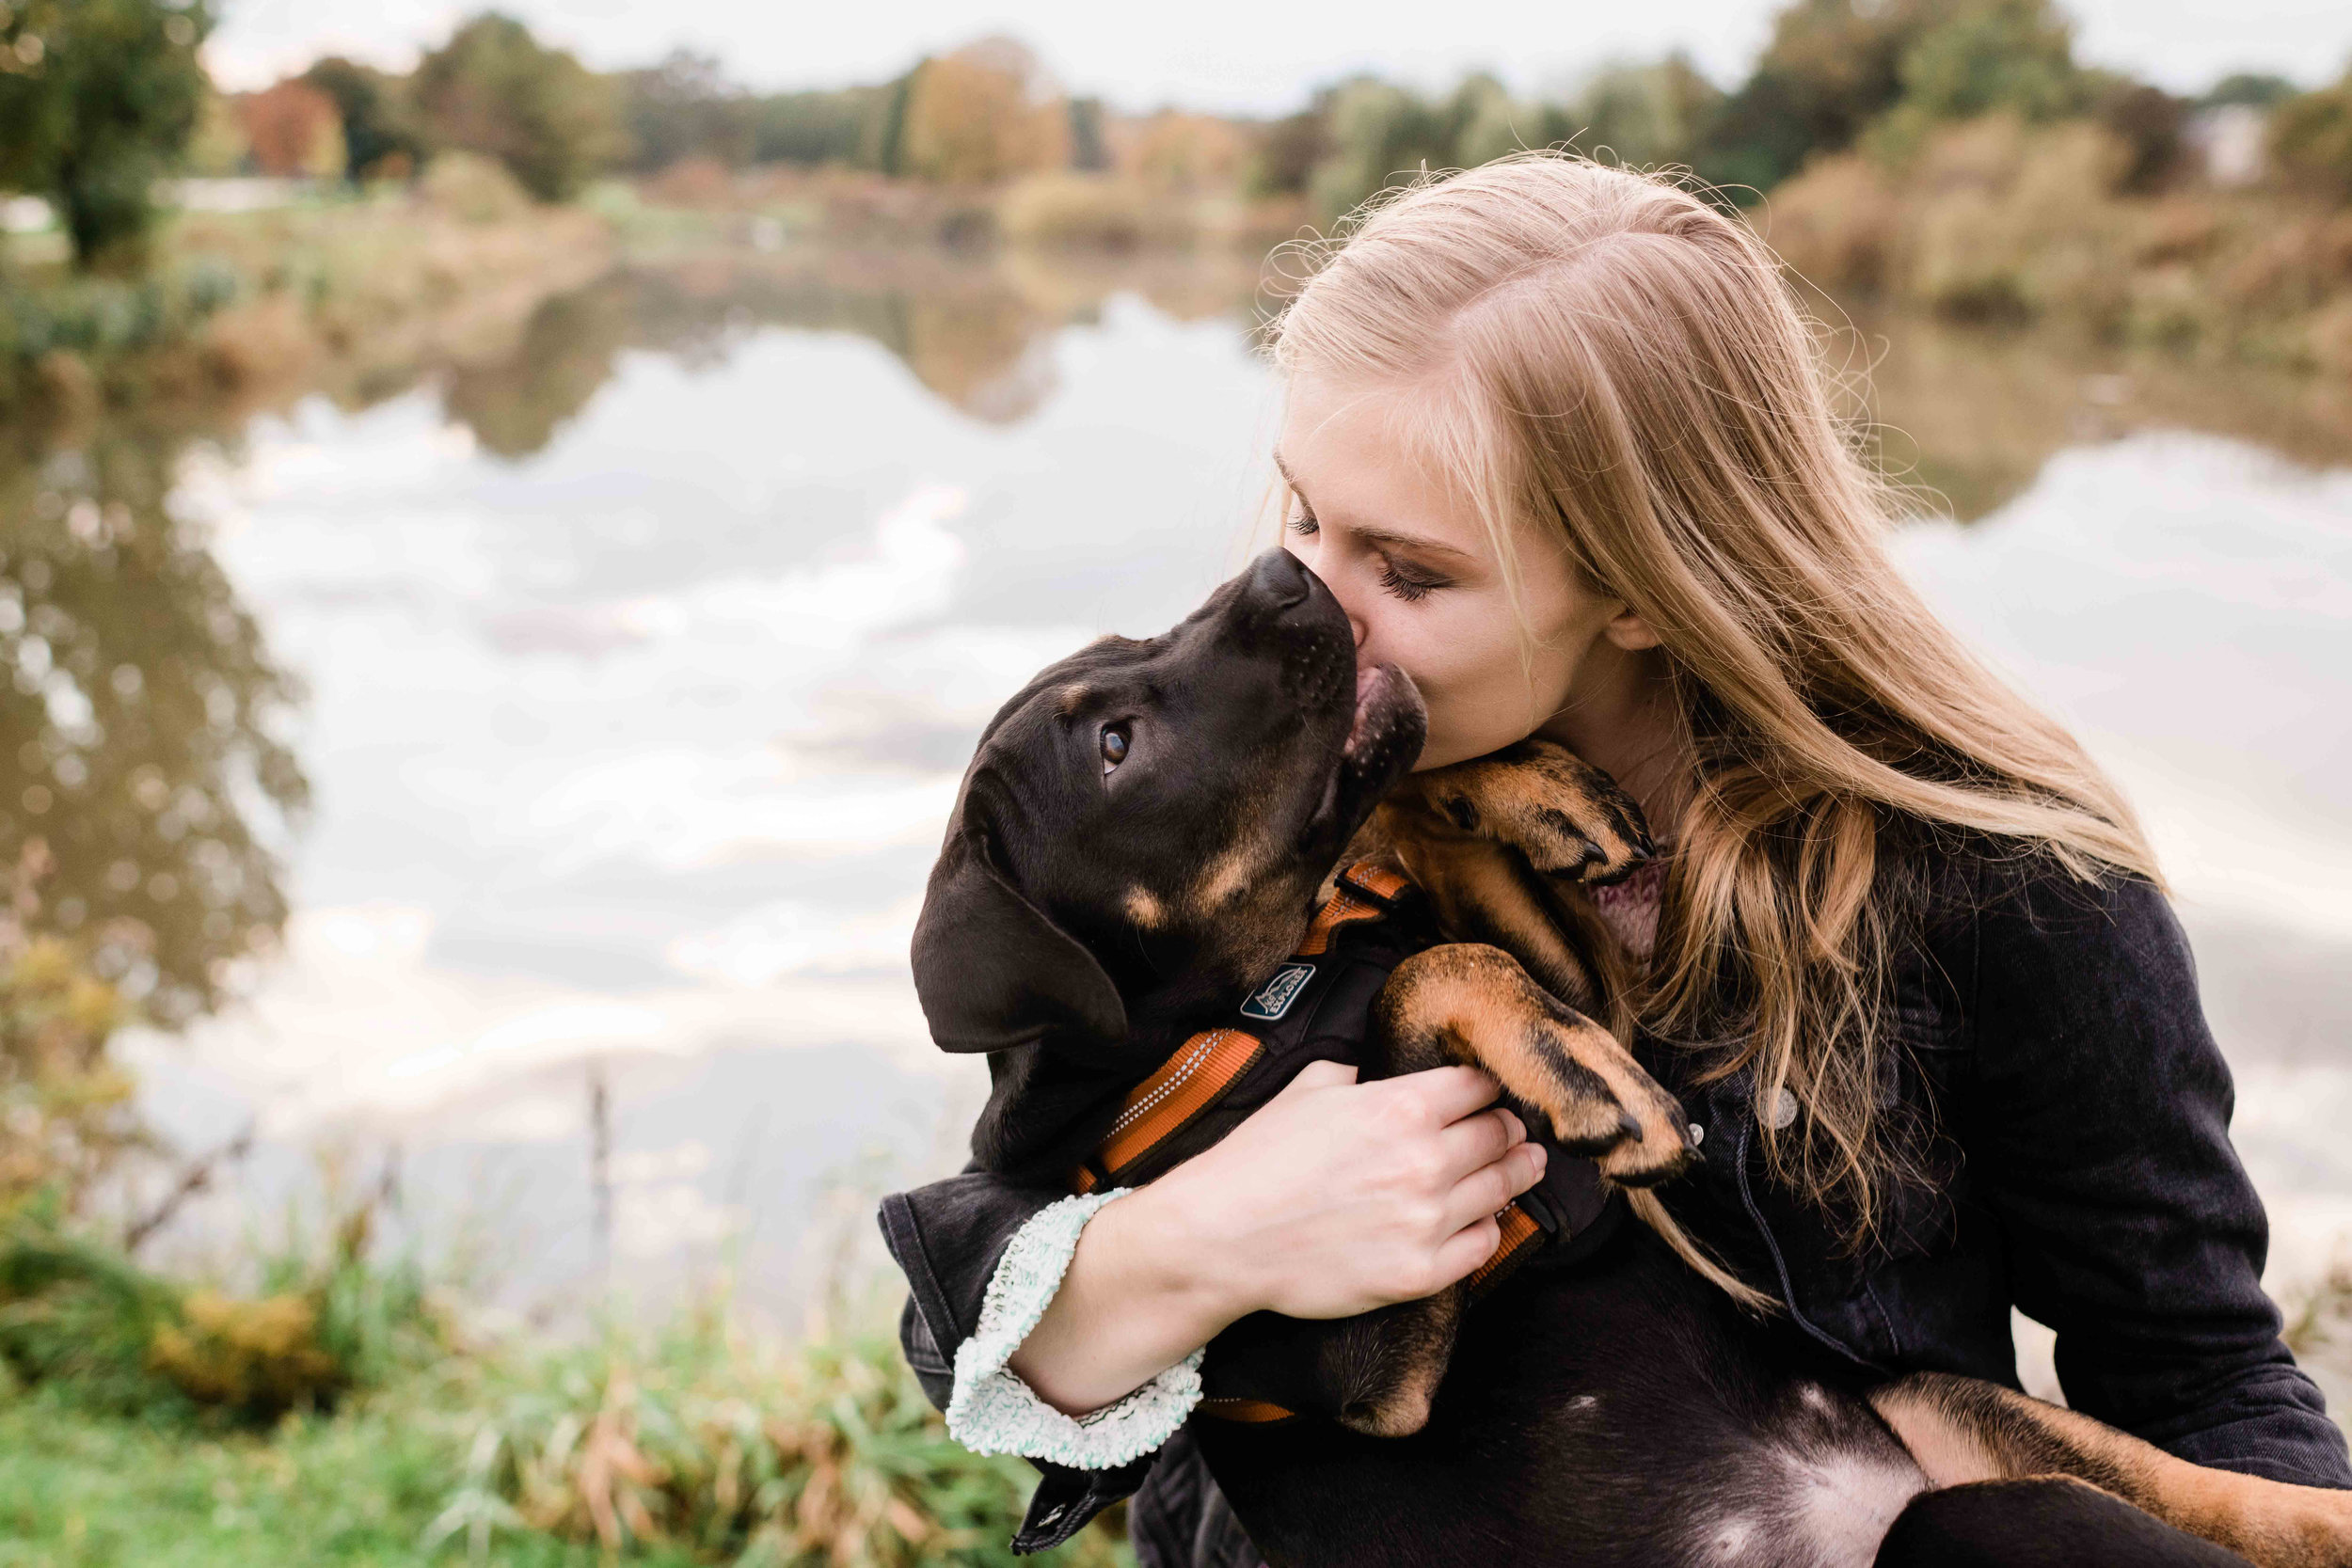 High school senior kisses her dog